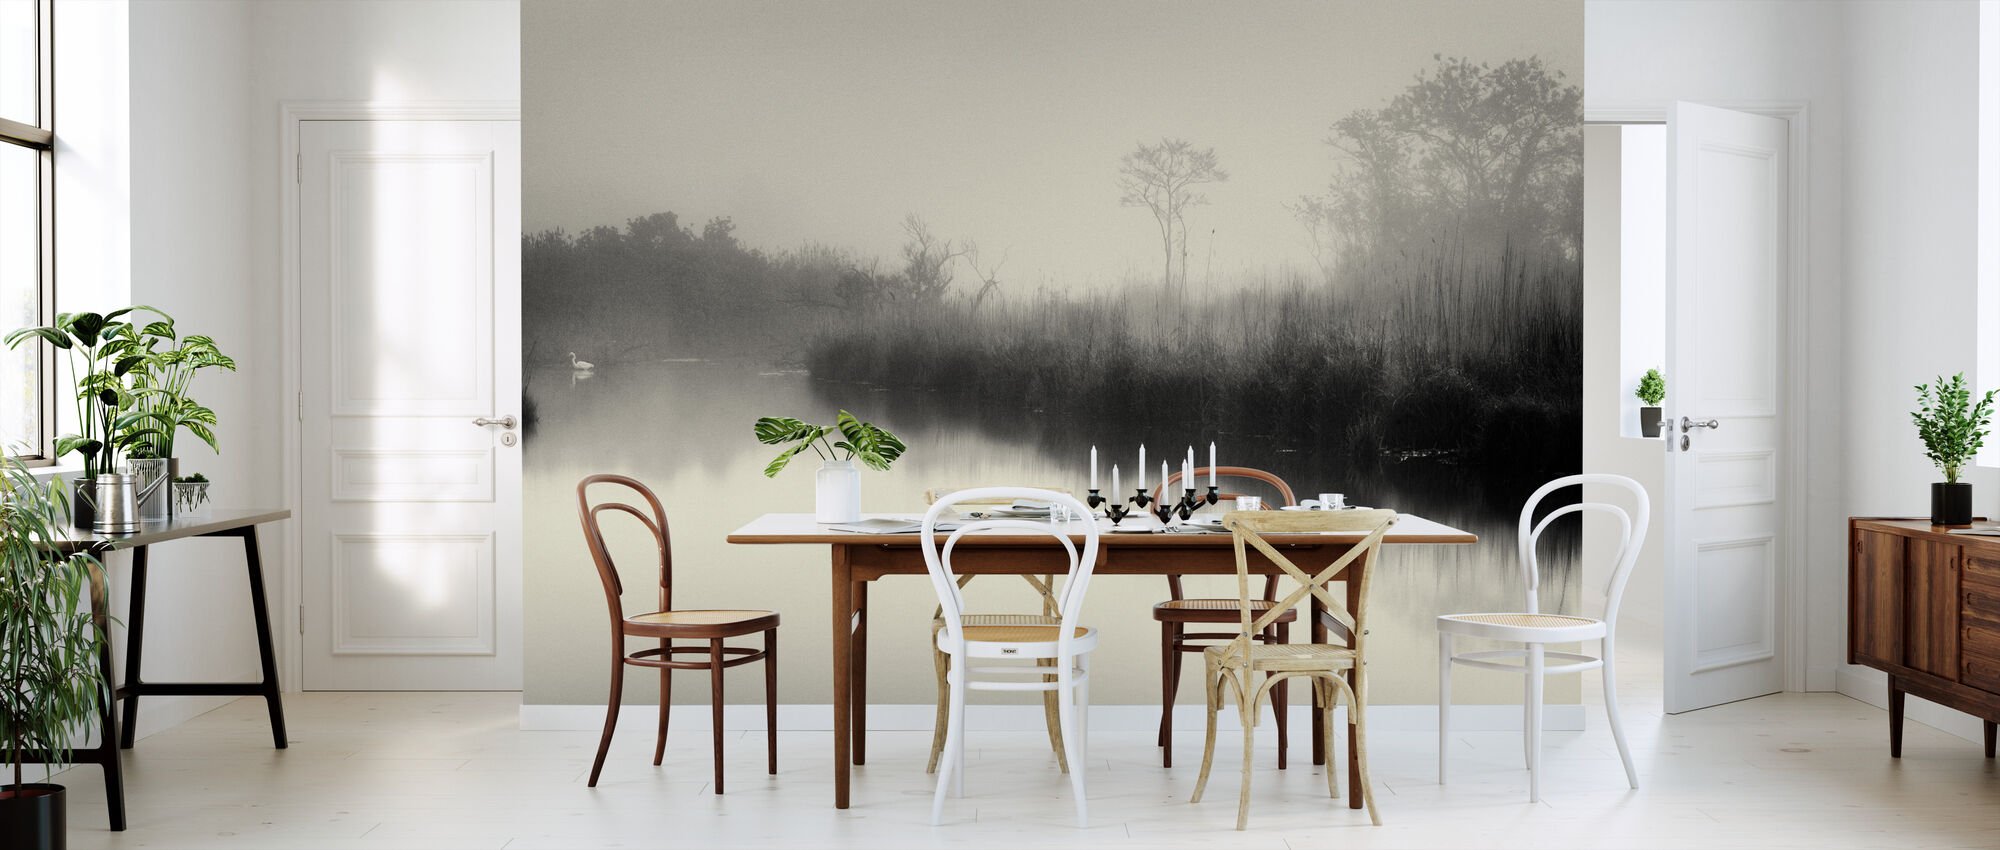 Lake and Trees - Wallpaper - Kitchen